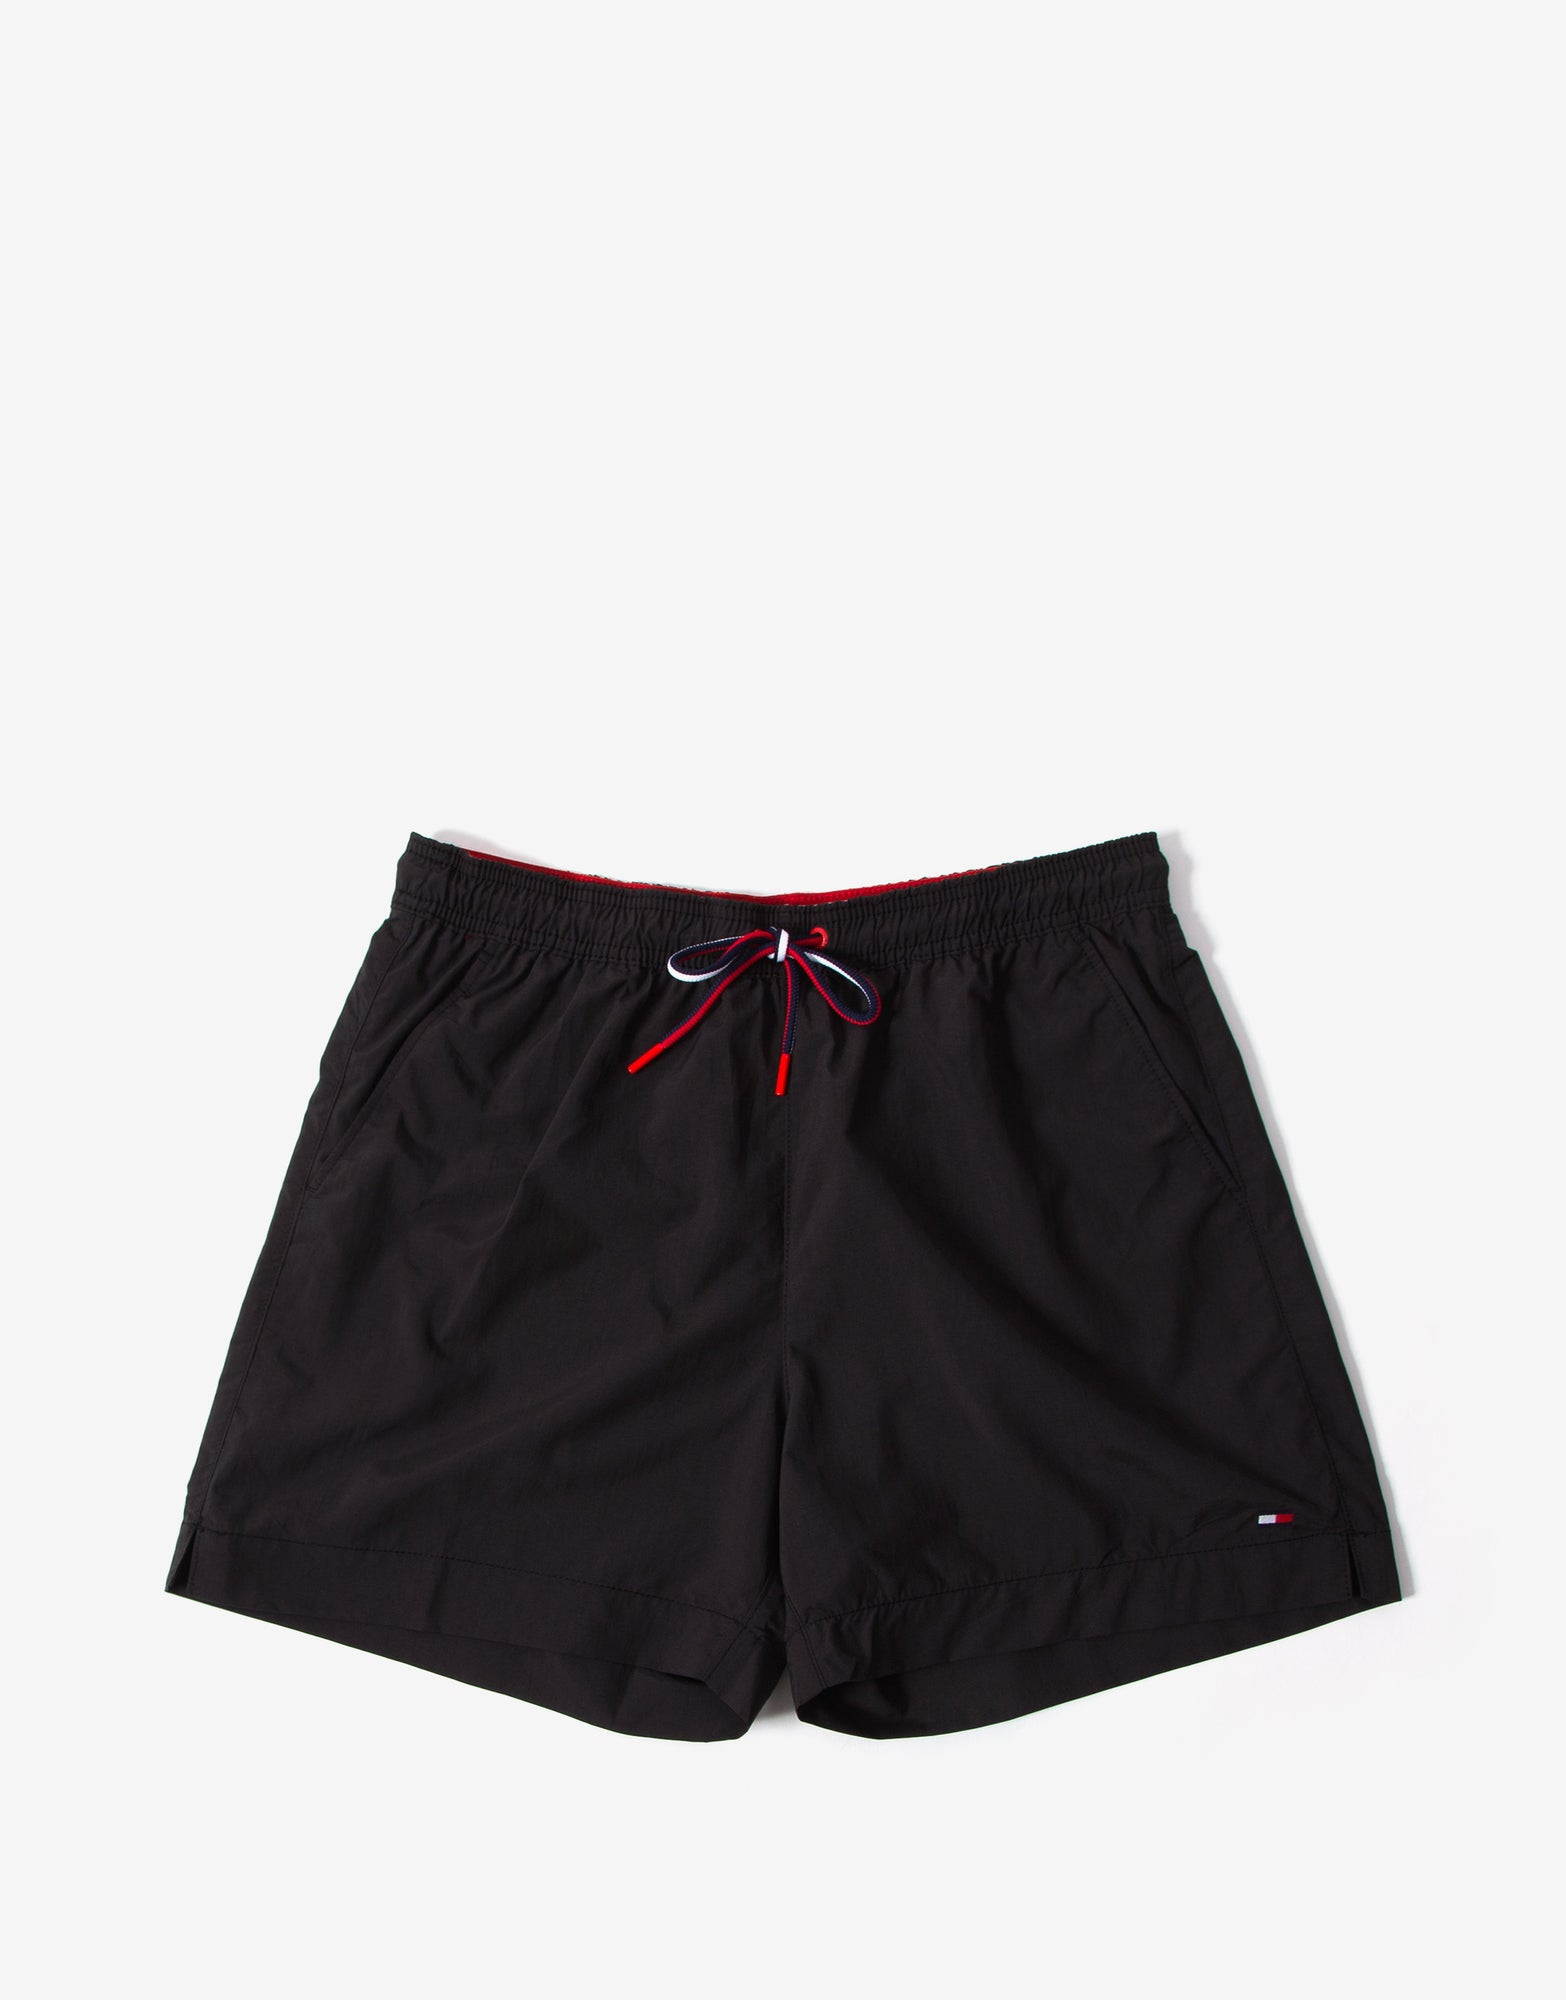 Tommy Hilfiger Swimwear Medium Drawstring Swim Shorts - Black